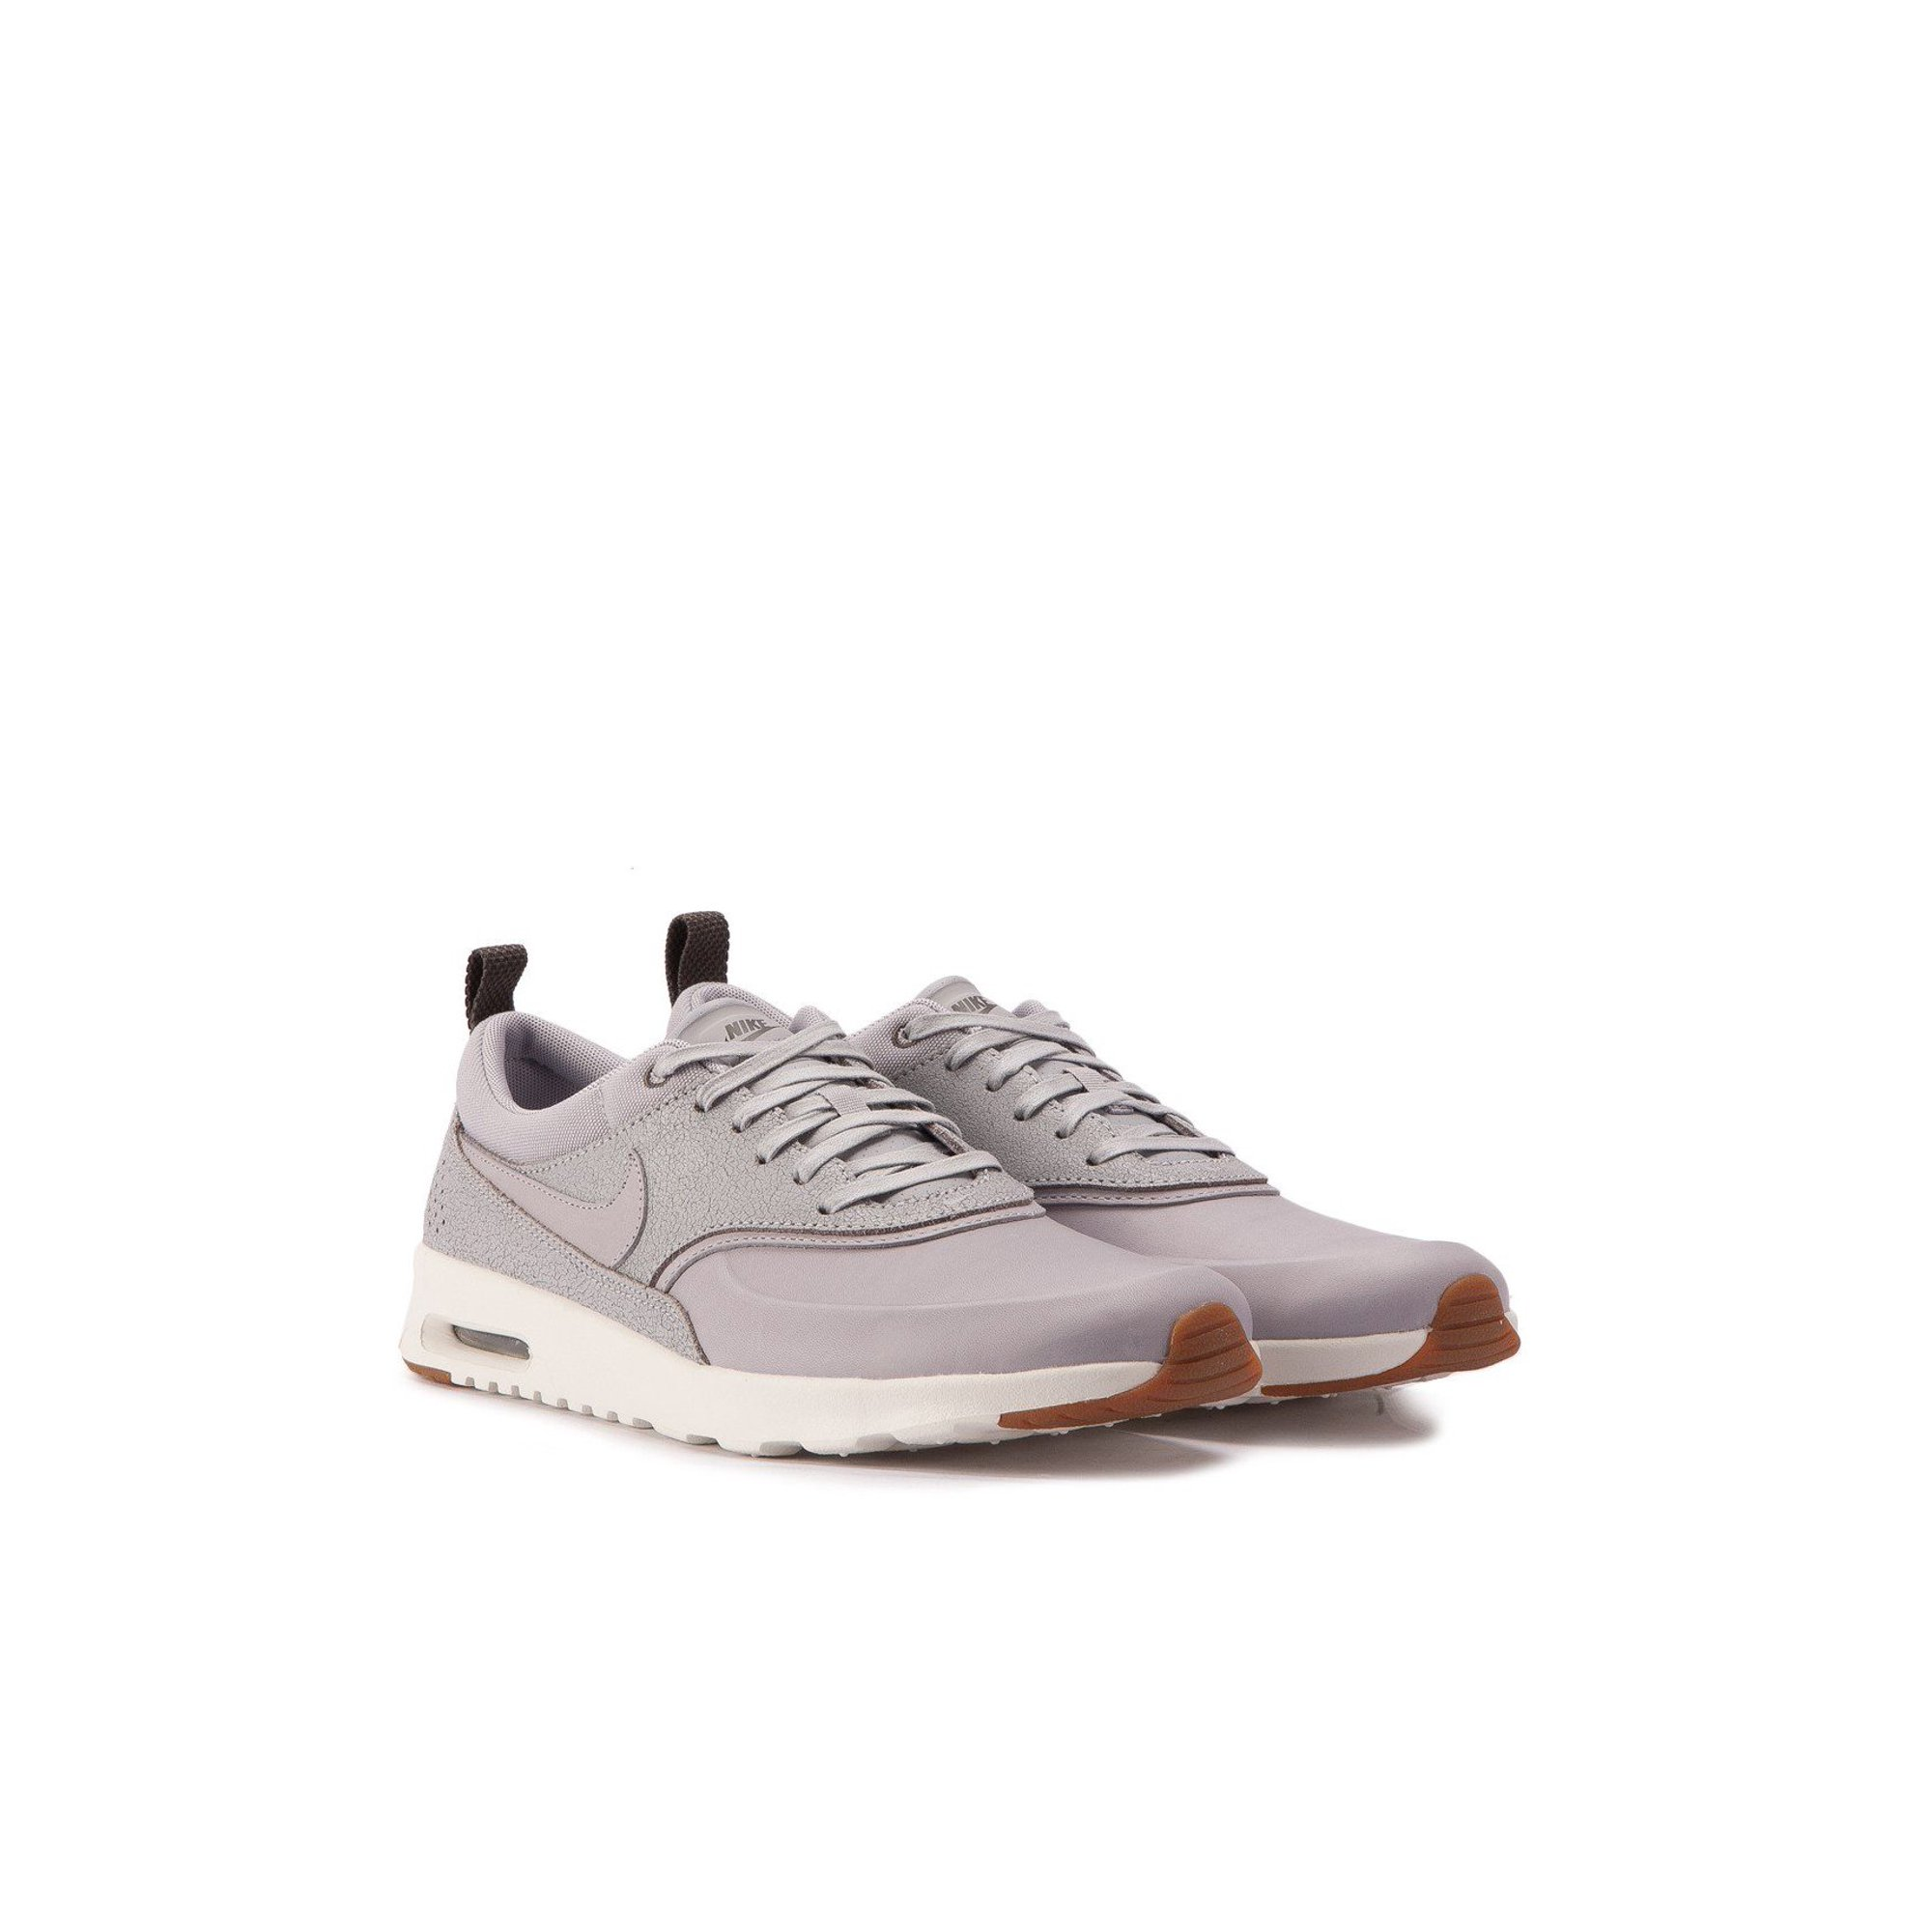 the latest 1db85 01410 Nike Womens Air Max Thea PRM Low Top Lace Up Running Sneaker   Walmart  Canada